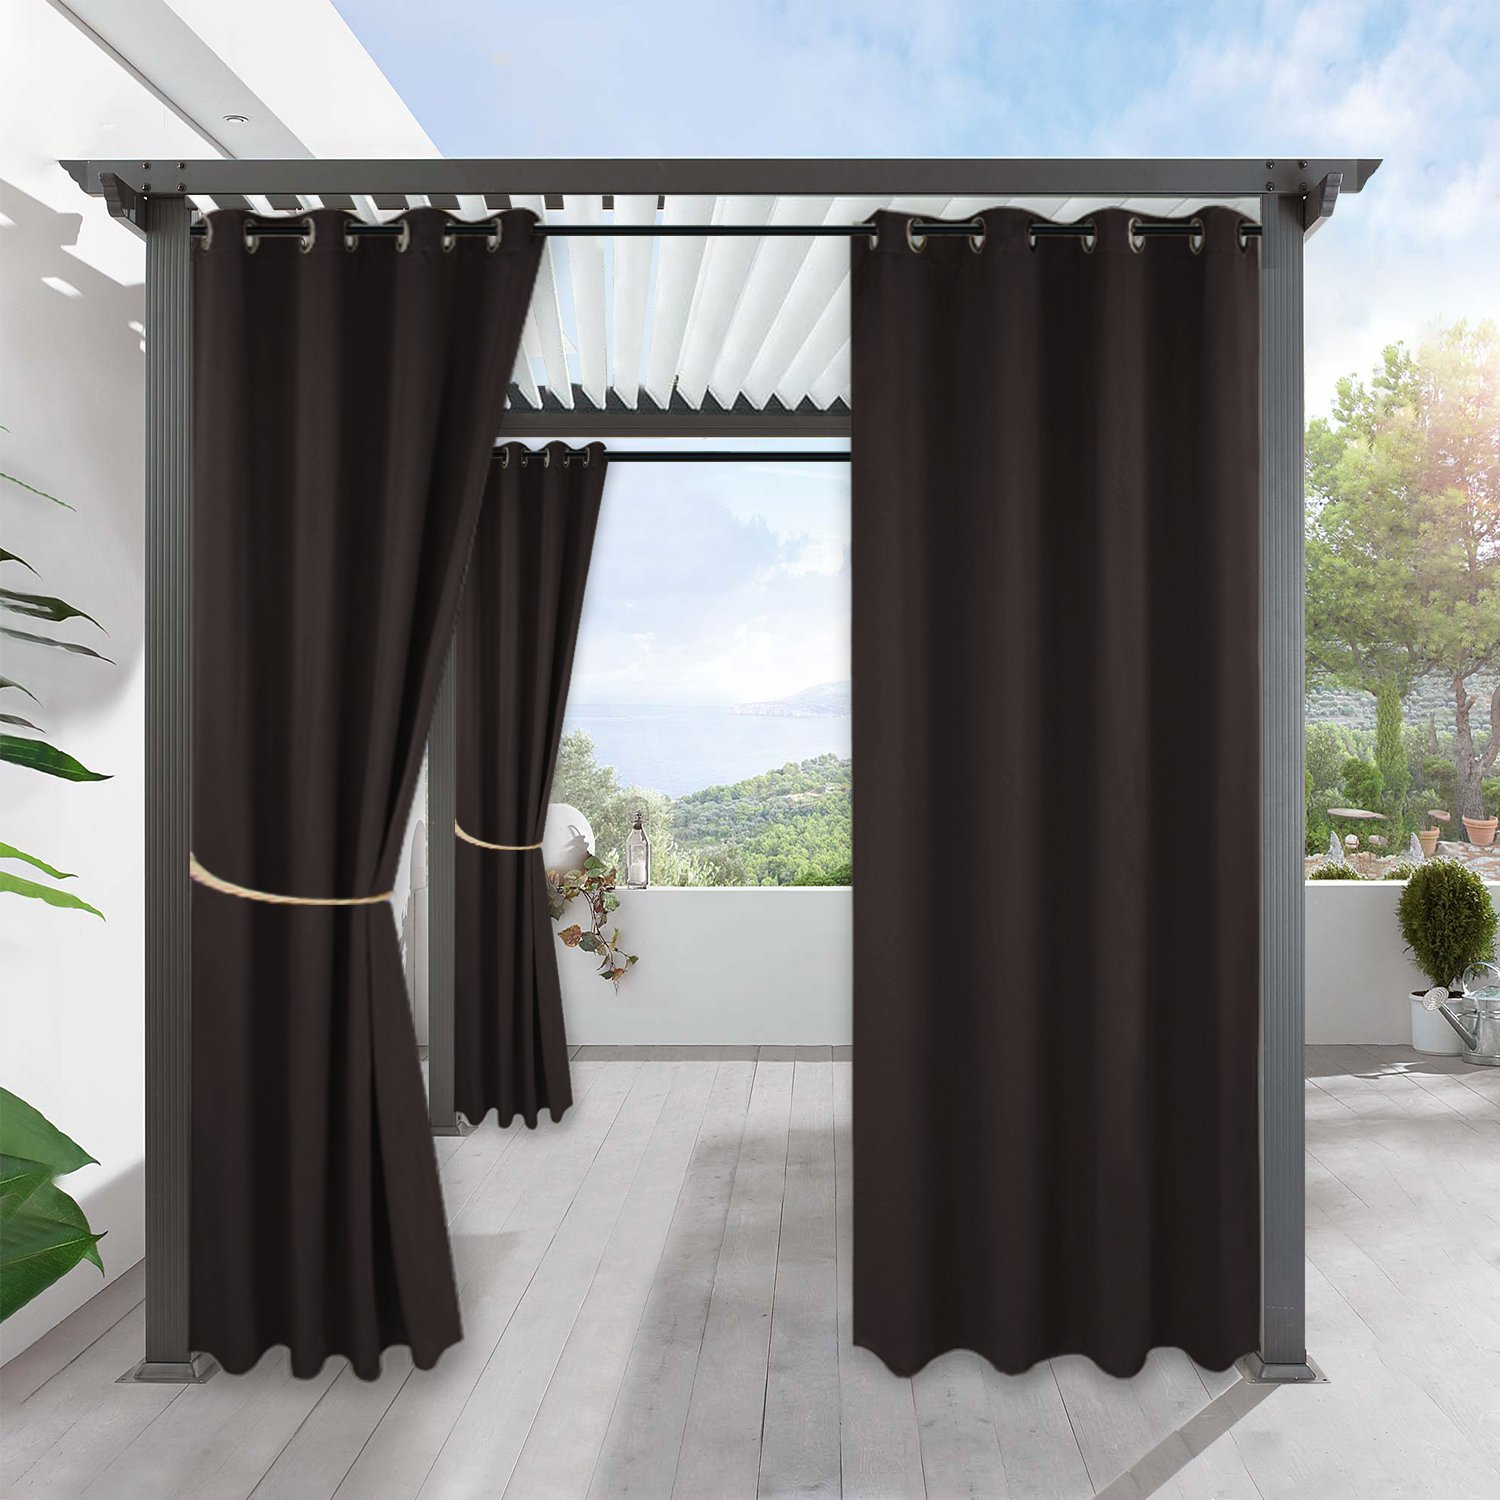 RYB HOME Sliding Outdoor Curtain - Home Décor for Lawn & Garden Stain Resistant Water Proof Insulated Curtains Repel Summer Heat & Winter Cold, Single Panel, W 52'' by L 108'', Brown